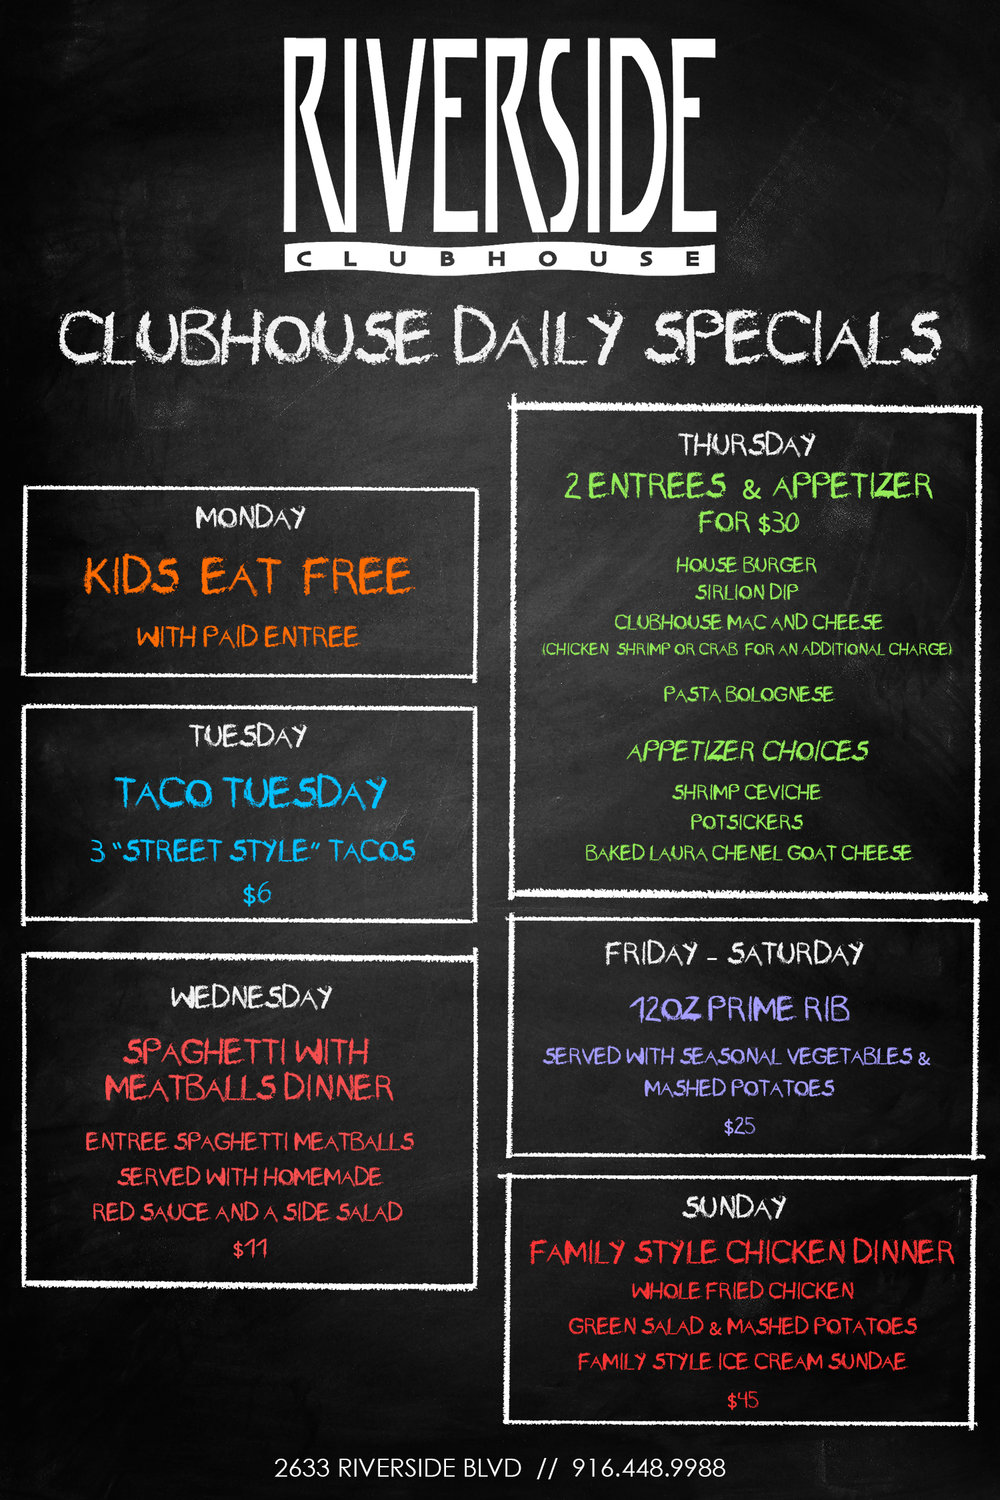 Daily-Specials (24x36) - AUG18.jpg